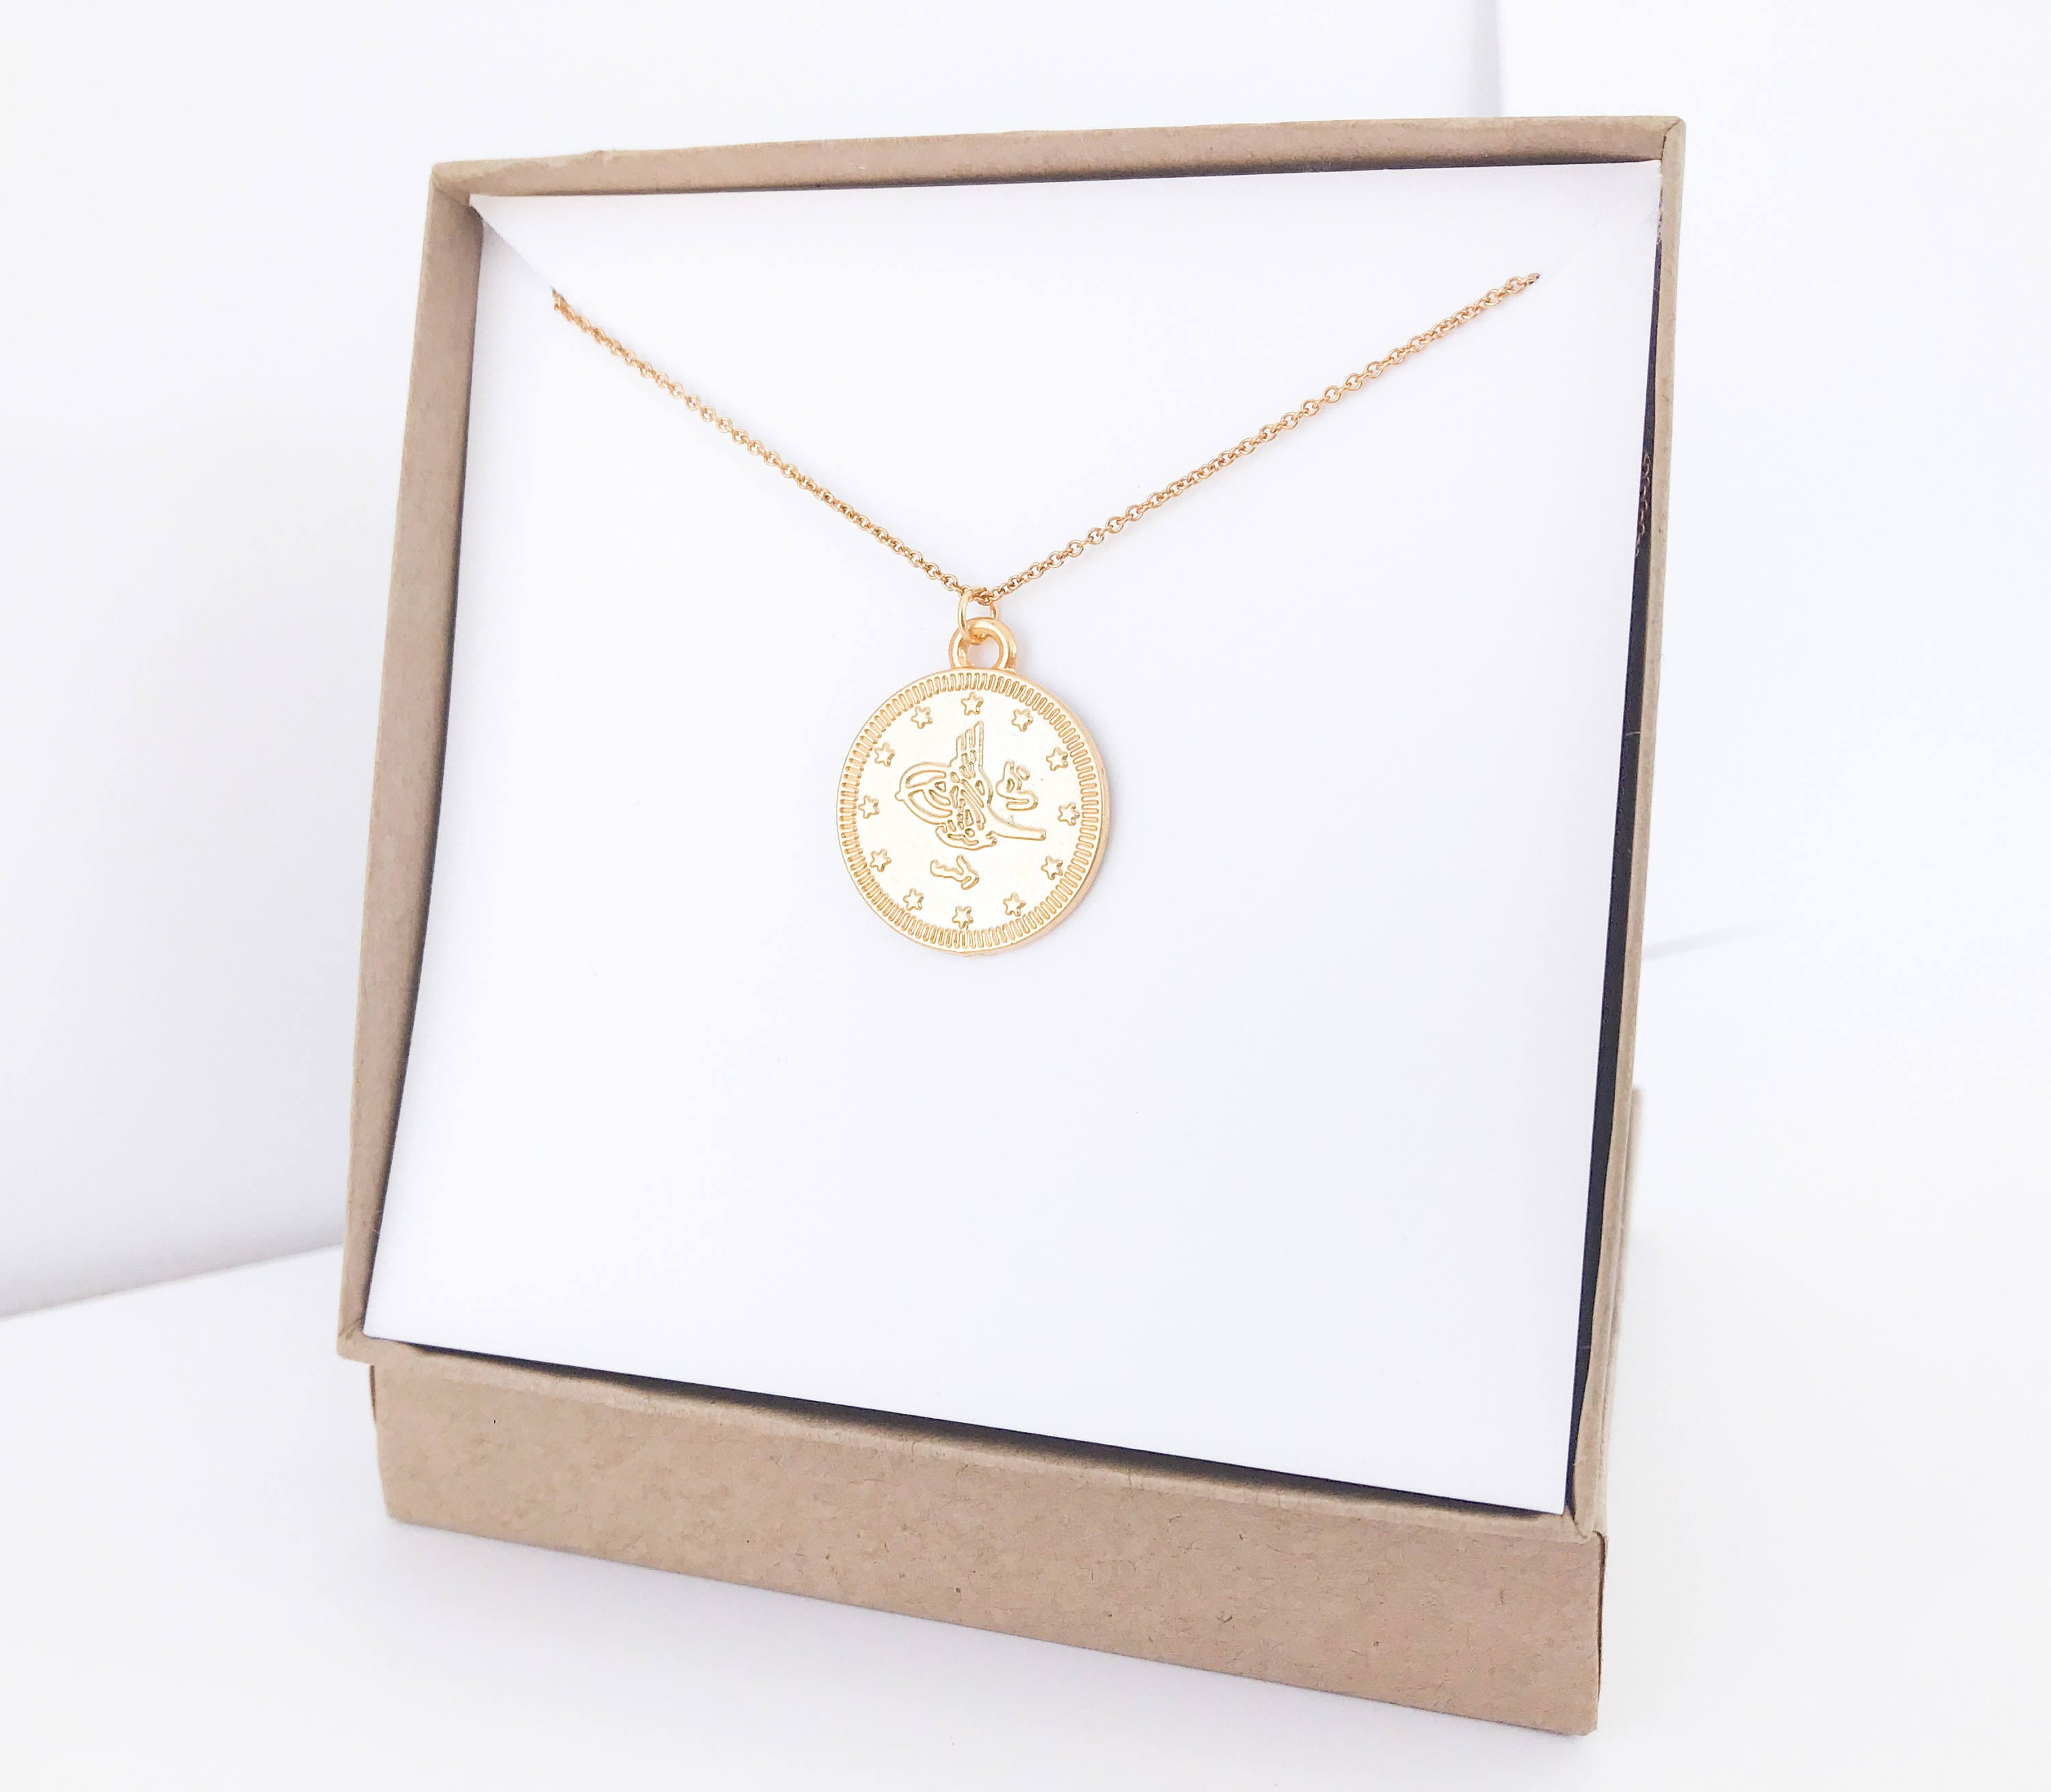 jewellers parmar chain jewellery gold pune small pendant web round shop with hanging jewellersparmar